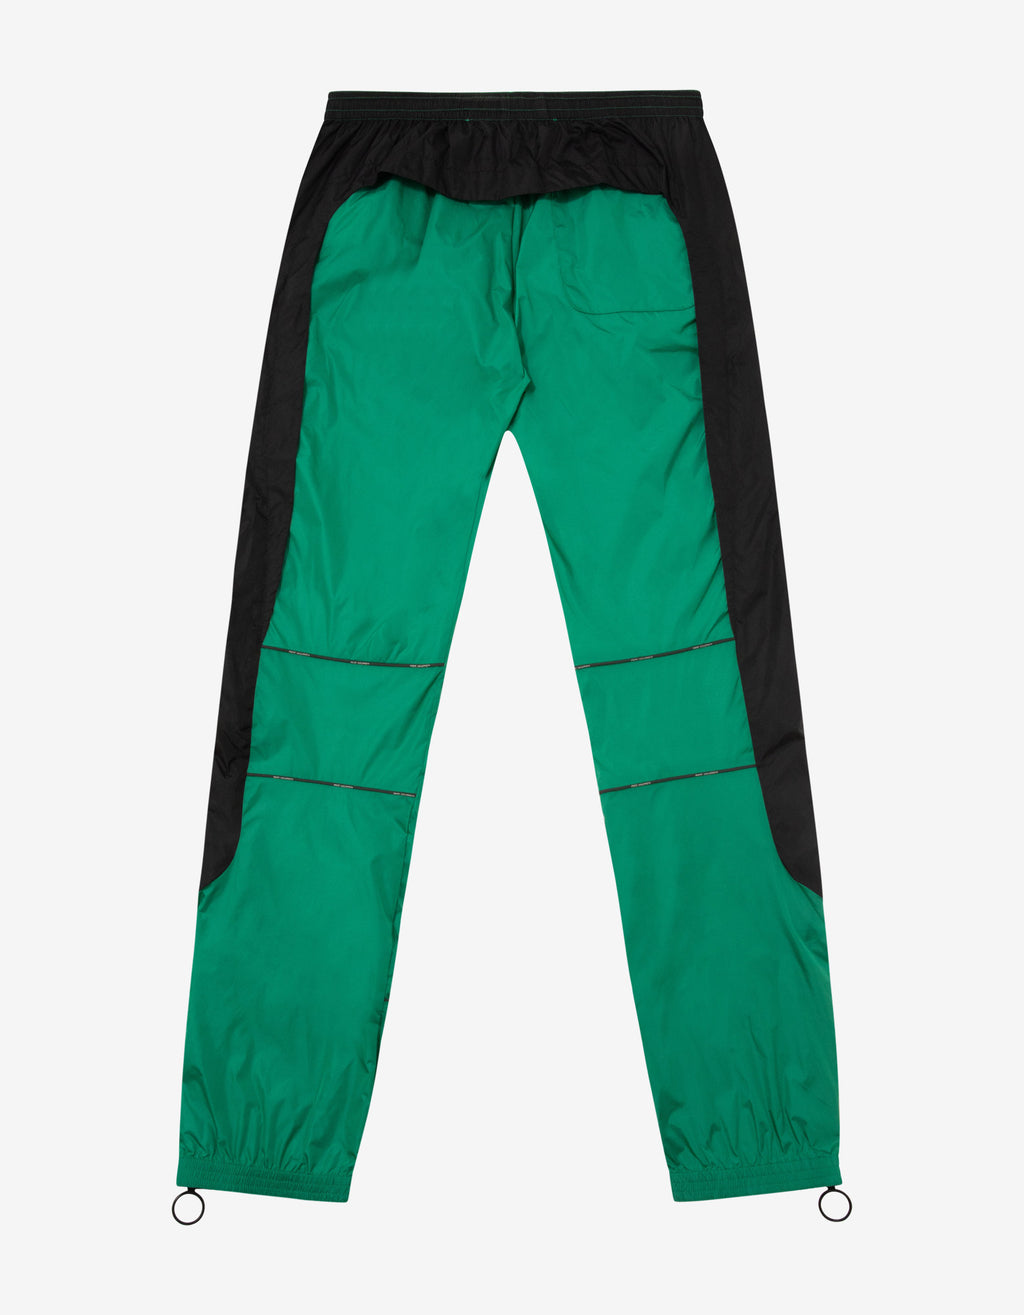 Green River Trail Nylon Track Pants